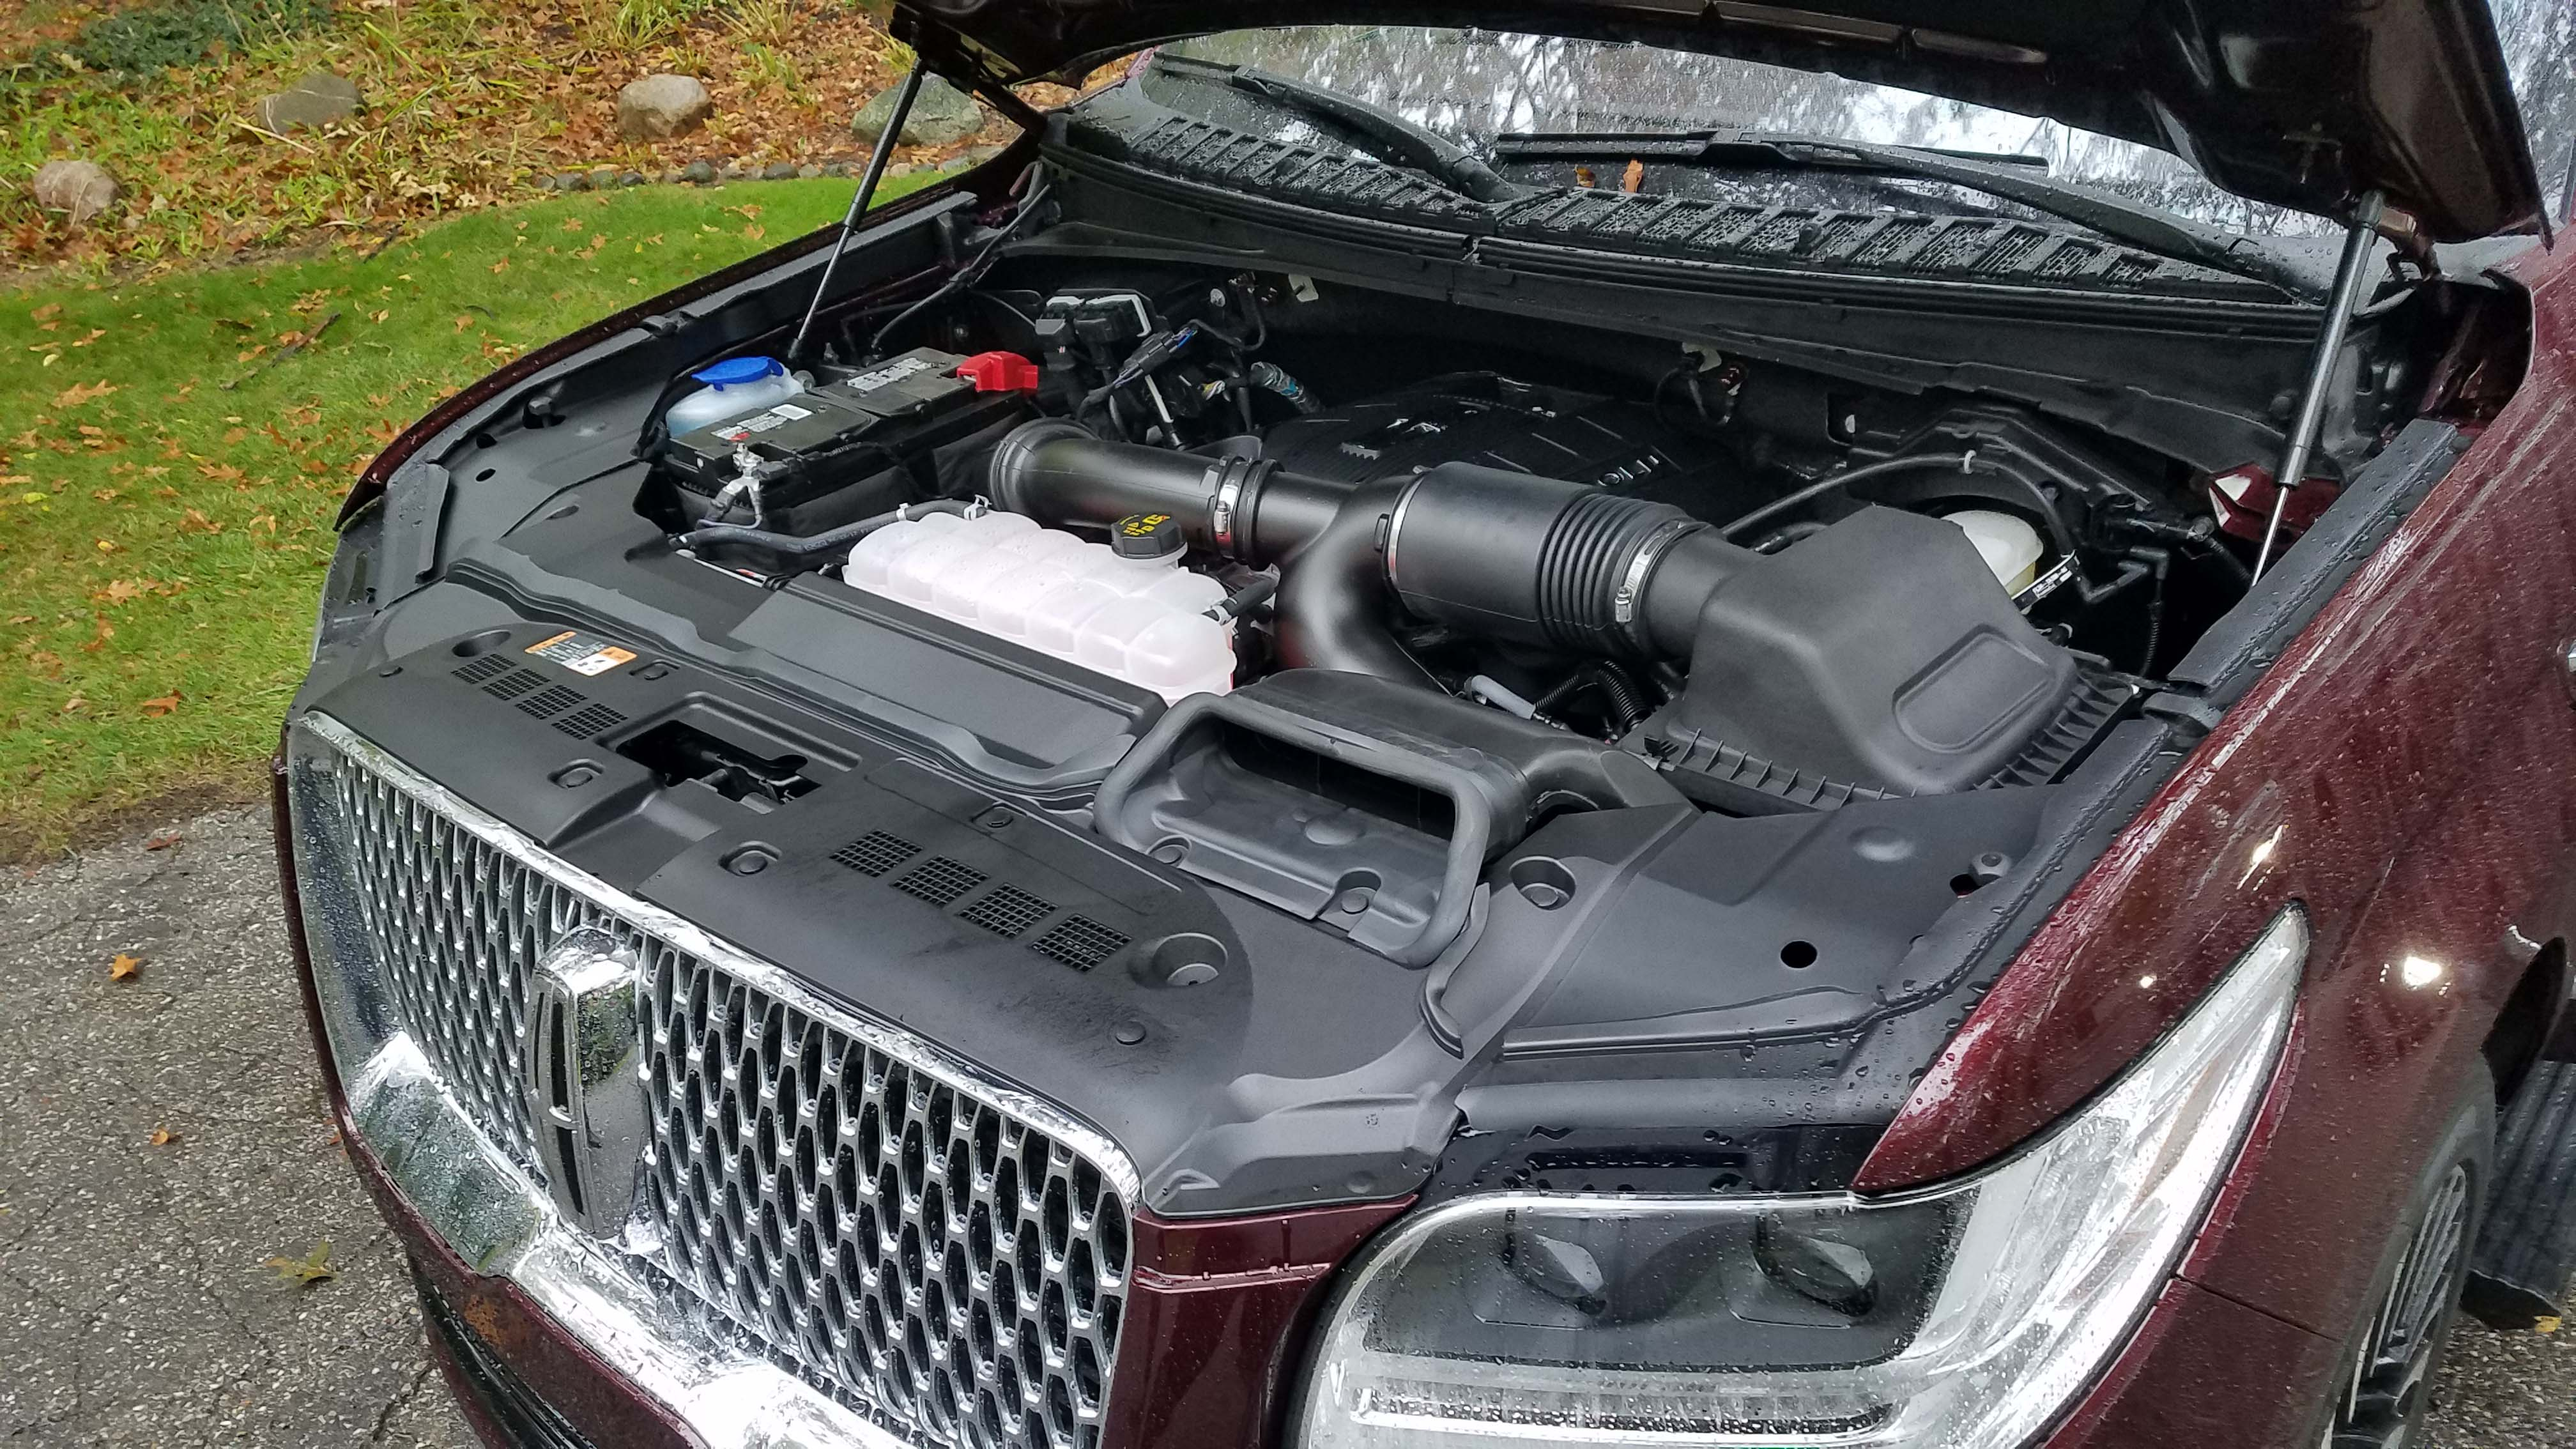 The Lincoln Navigator shares its 3.5-liter, twin-turbo